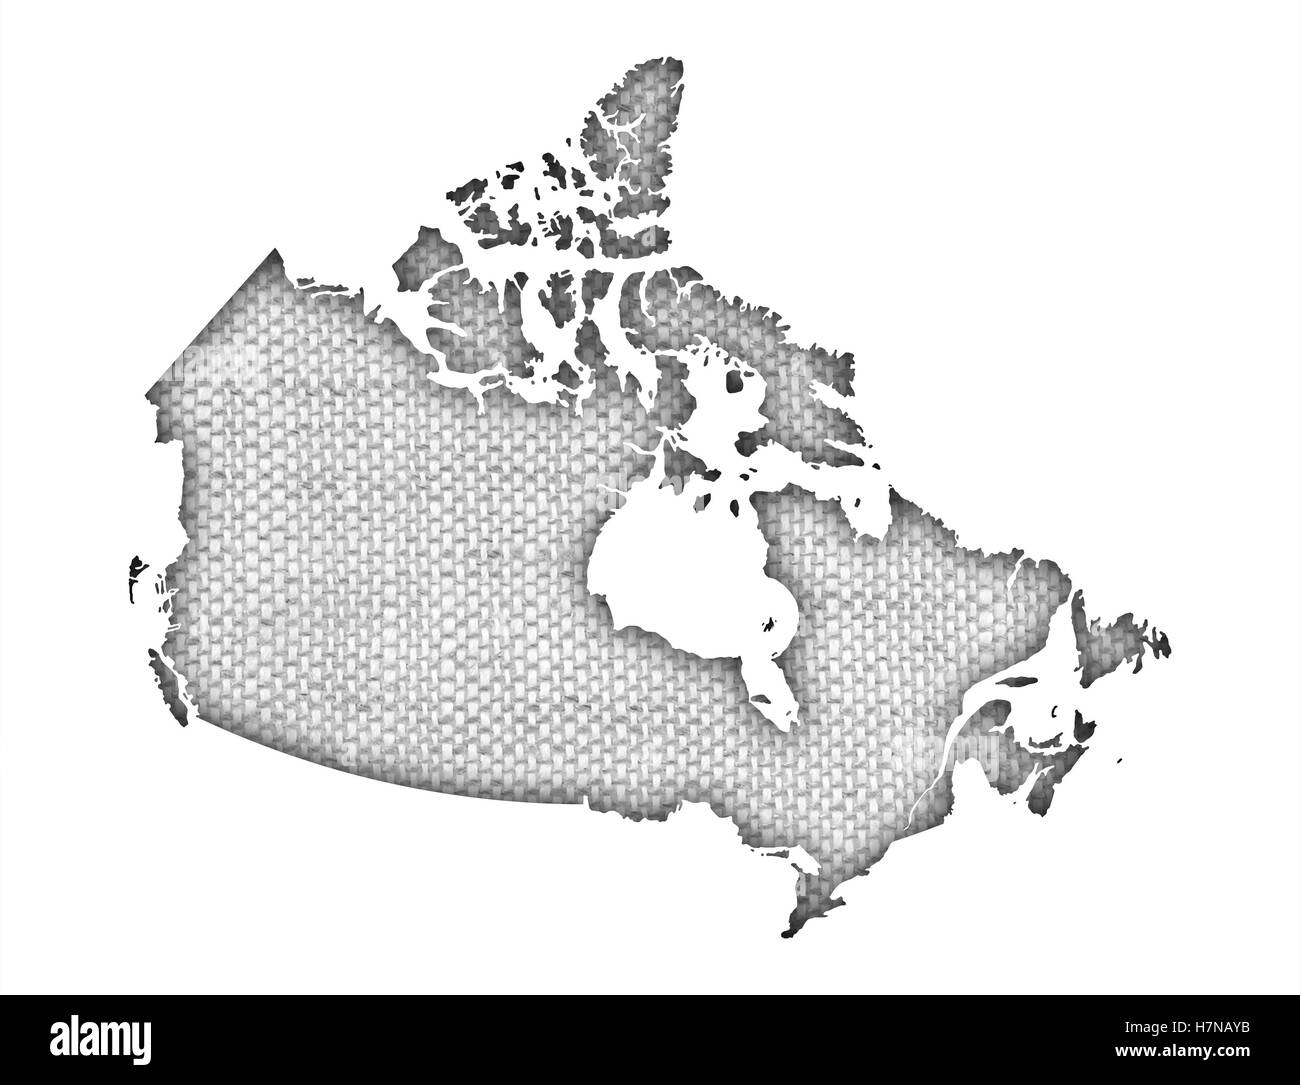 Canada map black and white stock photos images alamy map of canada on old linen stock image gumiabroncs Choice Image